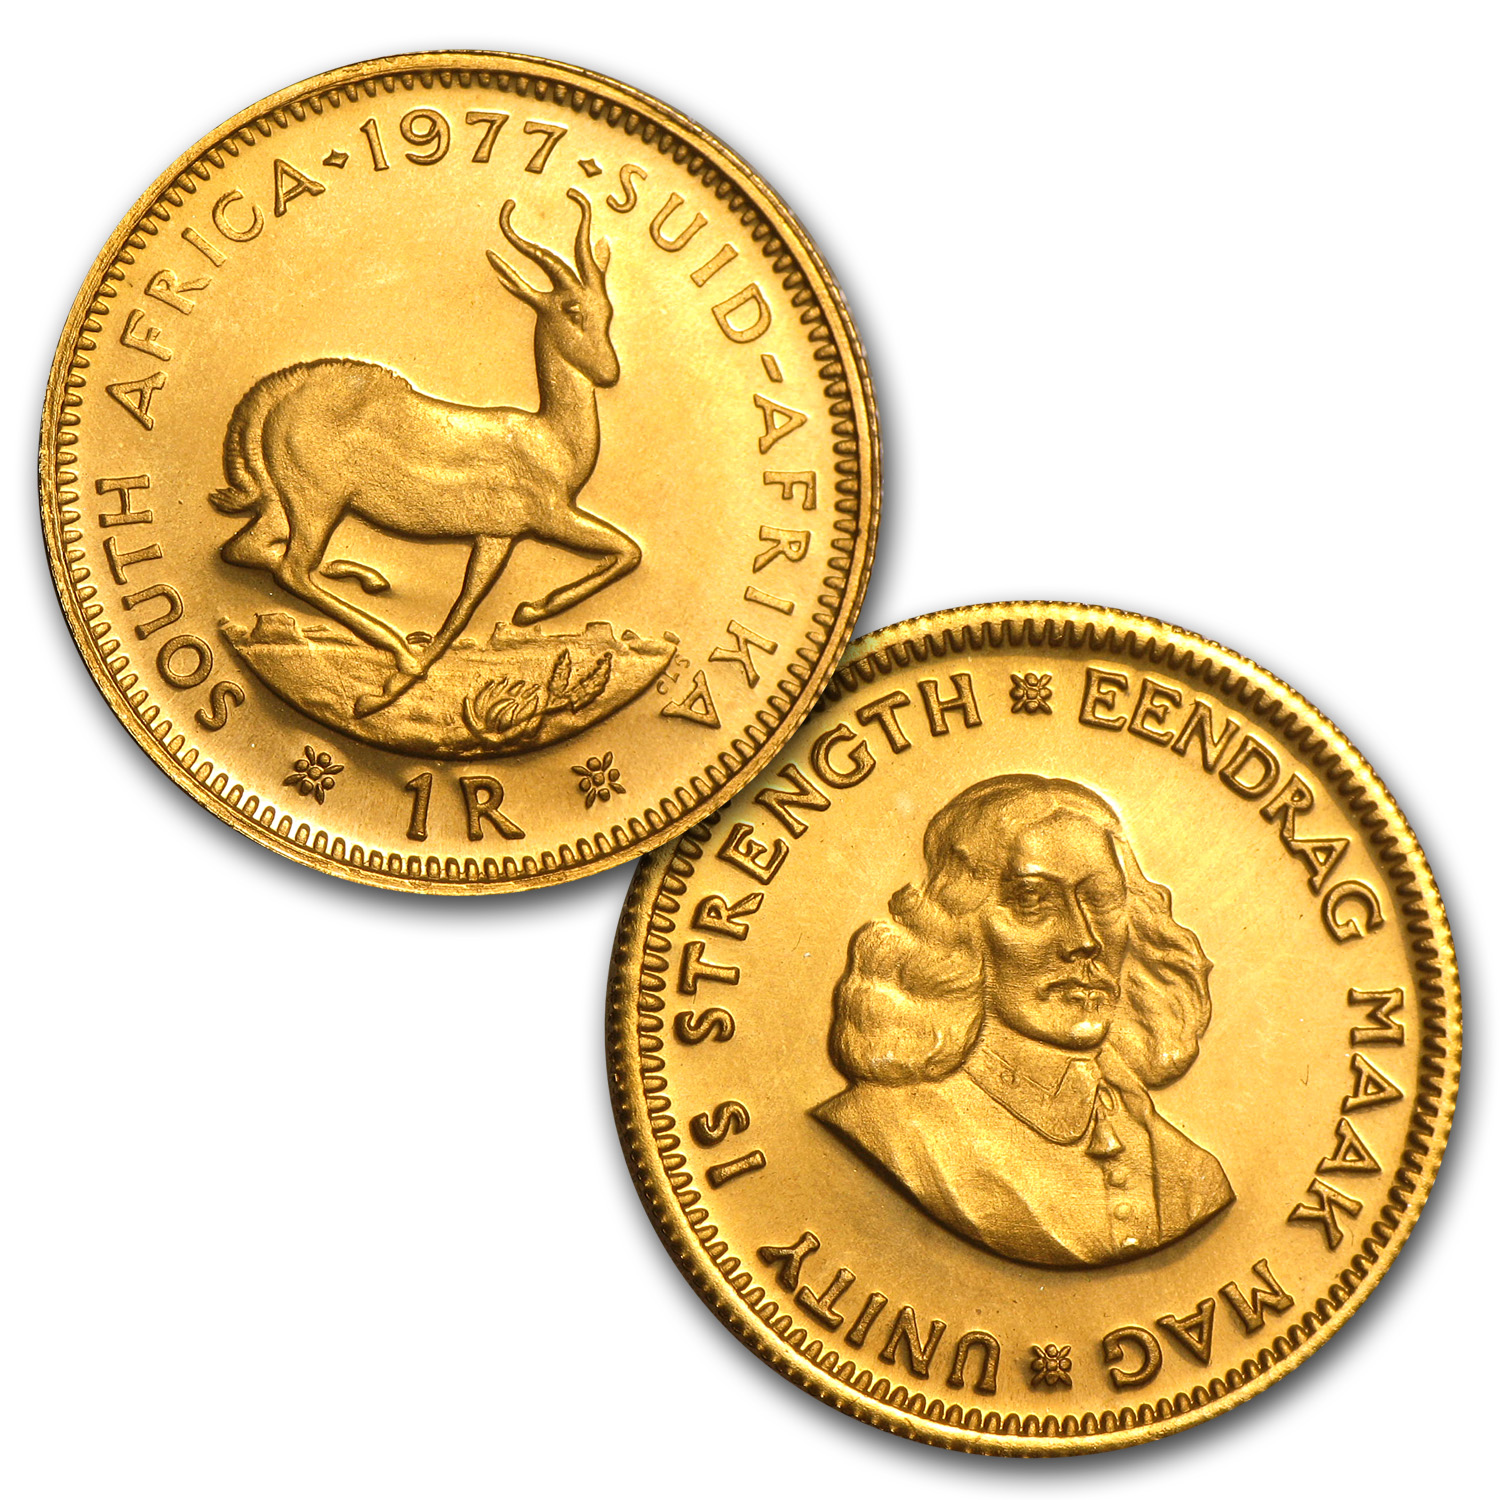 1977 South African Gold Proof Set (2-Coin)